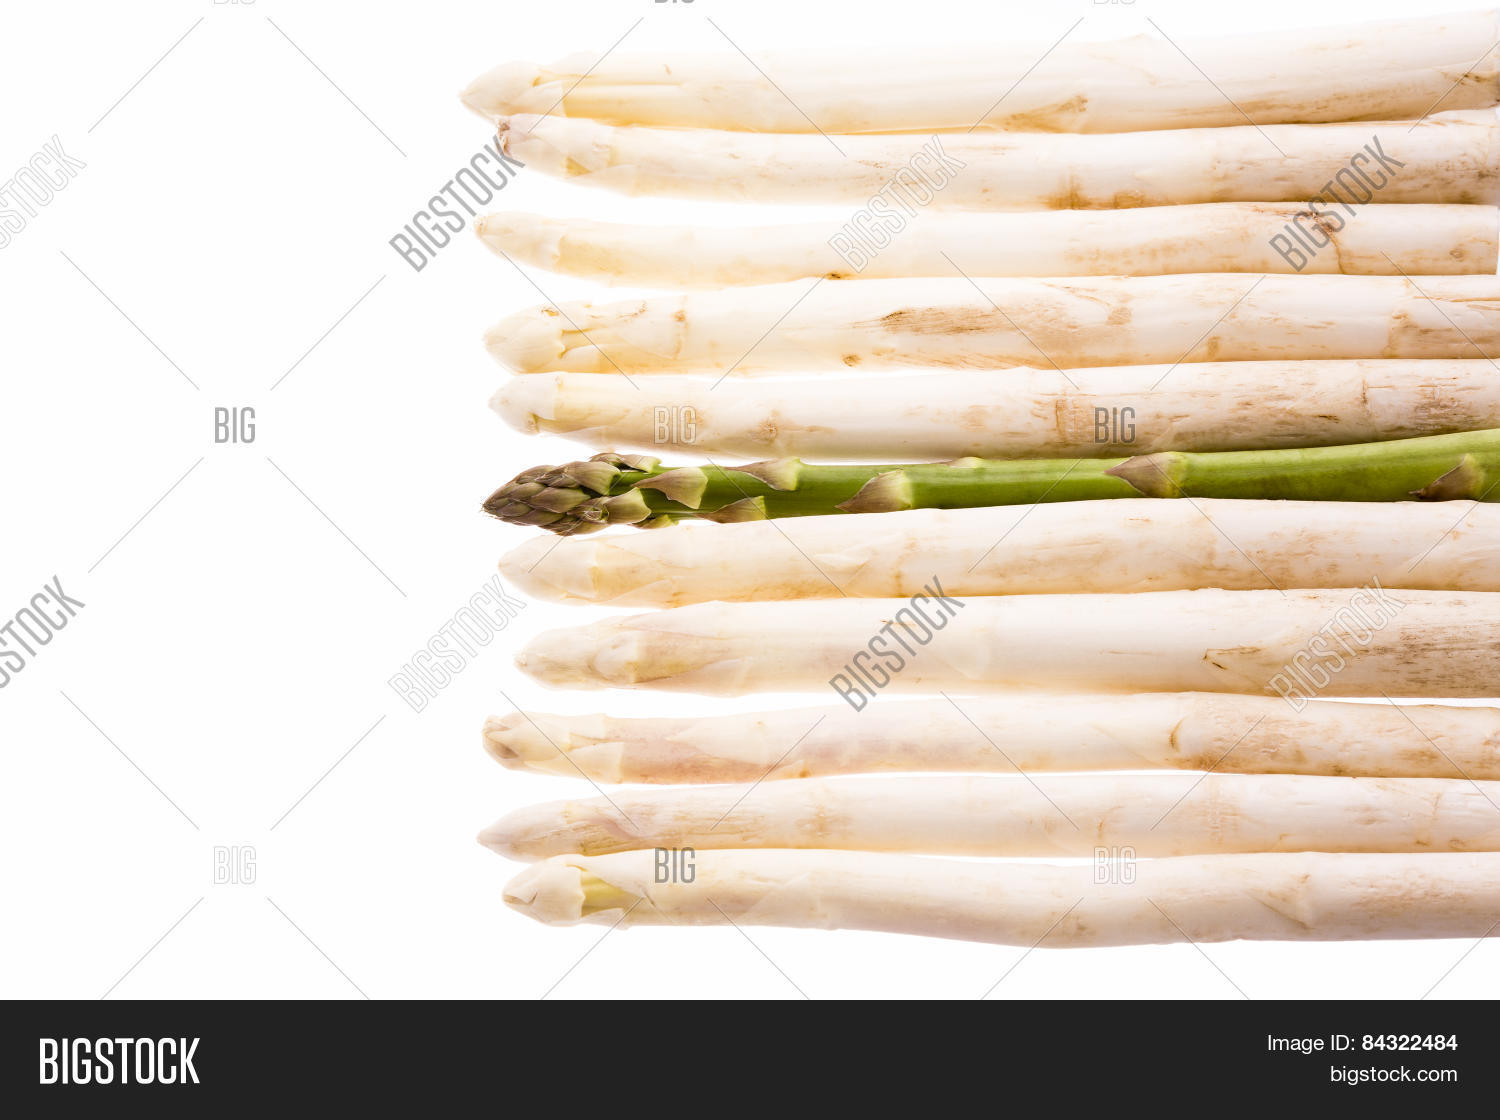 arrangement,asparagi,asparagus,asparaguses,background,close,cookery,cooking,crowd,cuisine,cut,cutout,difference,eleven,food,foreign,foreigner,garden,gastronomy,gourmet,green,individual,isolated,lead,line-up,man,many,marginal,maverick,metaphor,odd,officinalis,one,outcast,outsider,preparation,prepare,raw,row,single,spear,standing,ten,underdog,vegetable,vegetarian,vegetarianism,white,winner